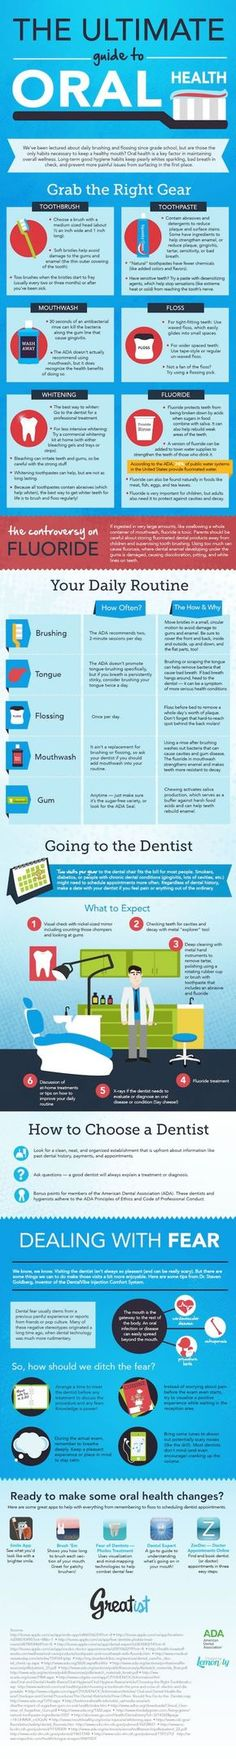 THE ULTIMATE GUIDE TO ORAL HEALTH Here's everything you need to know to keep your mouth clean, healthy, and pearly white...www.prodental.com